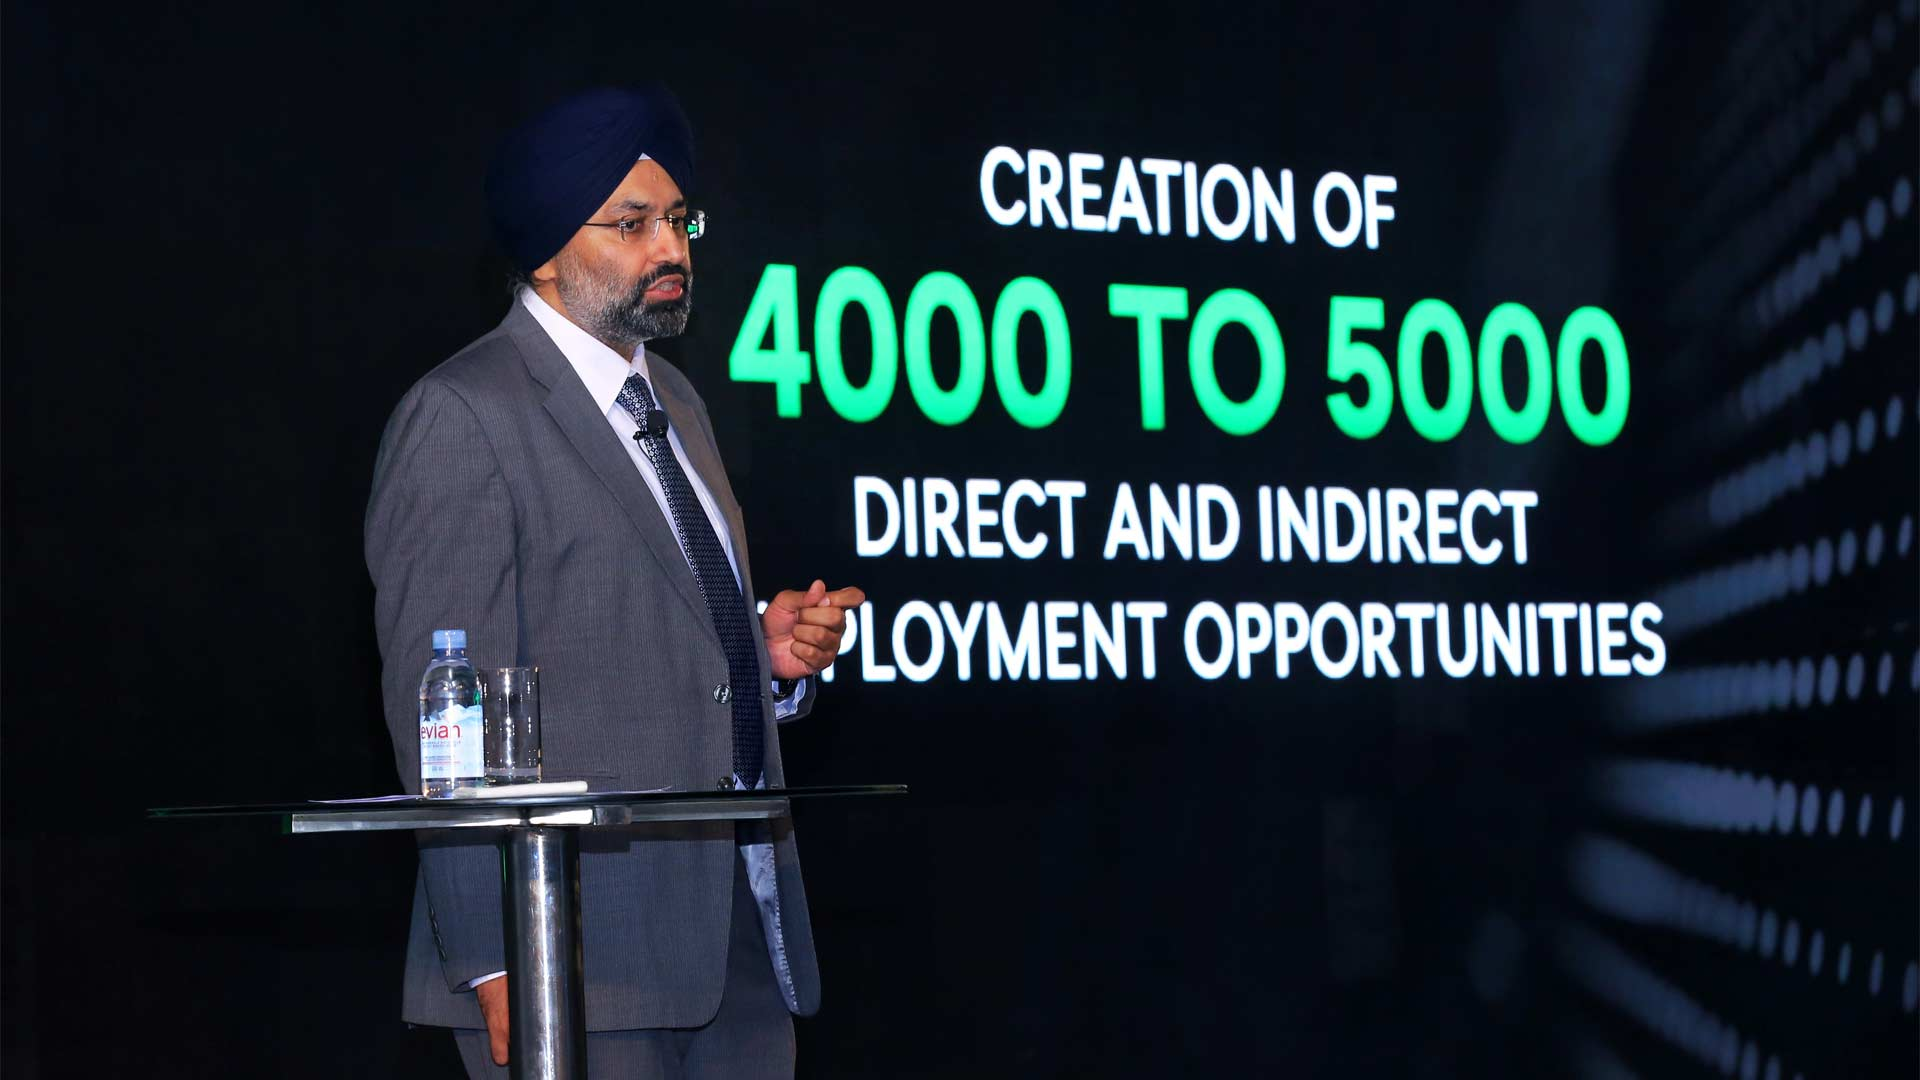 Volkswagen-Group-Skoda-India-2.0-7900-Crore-Investment-5000 jobs